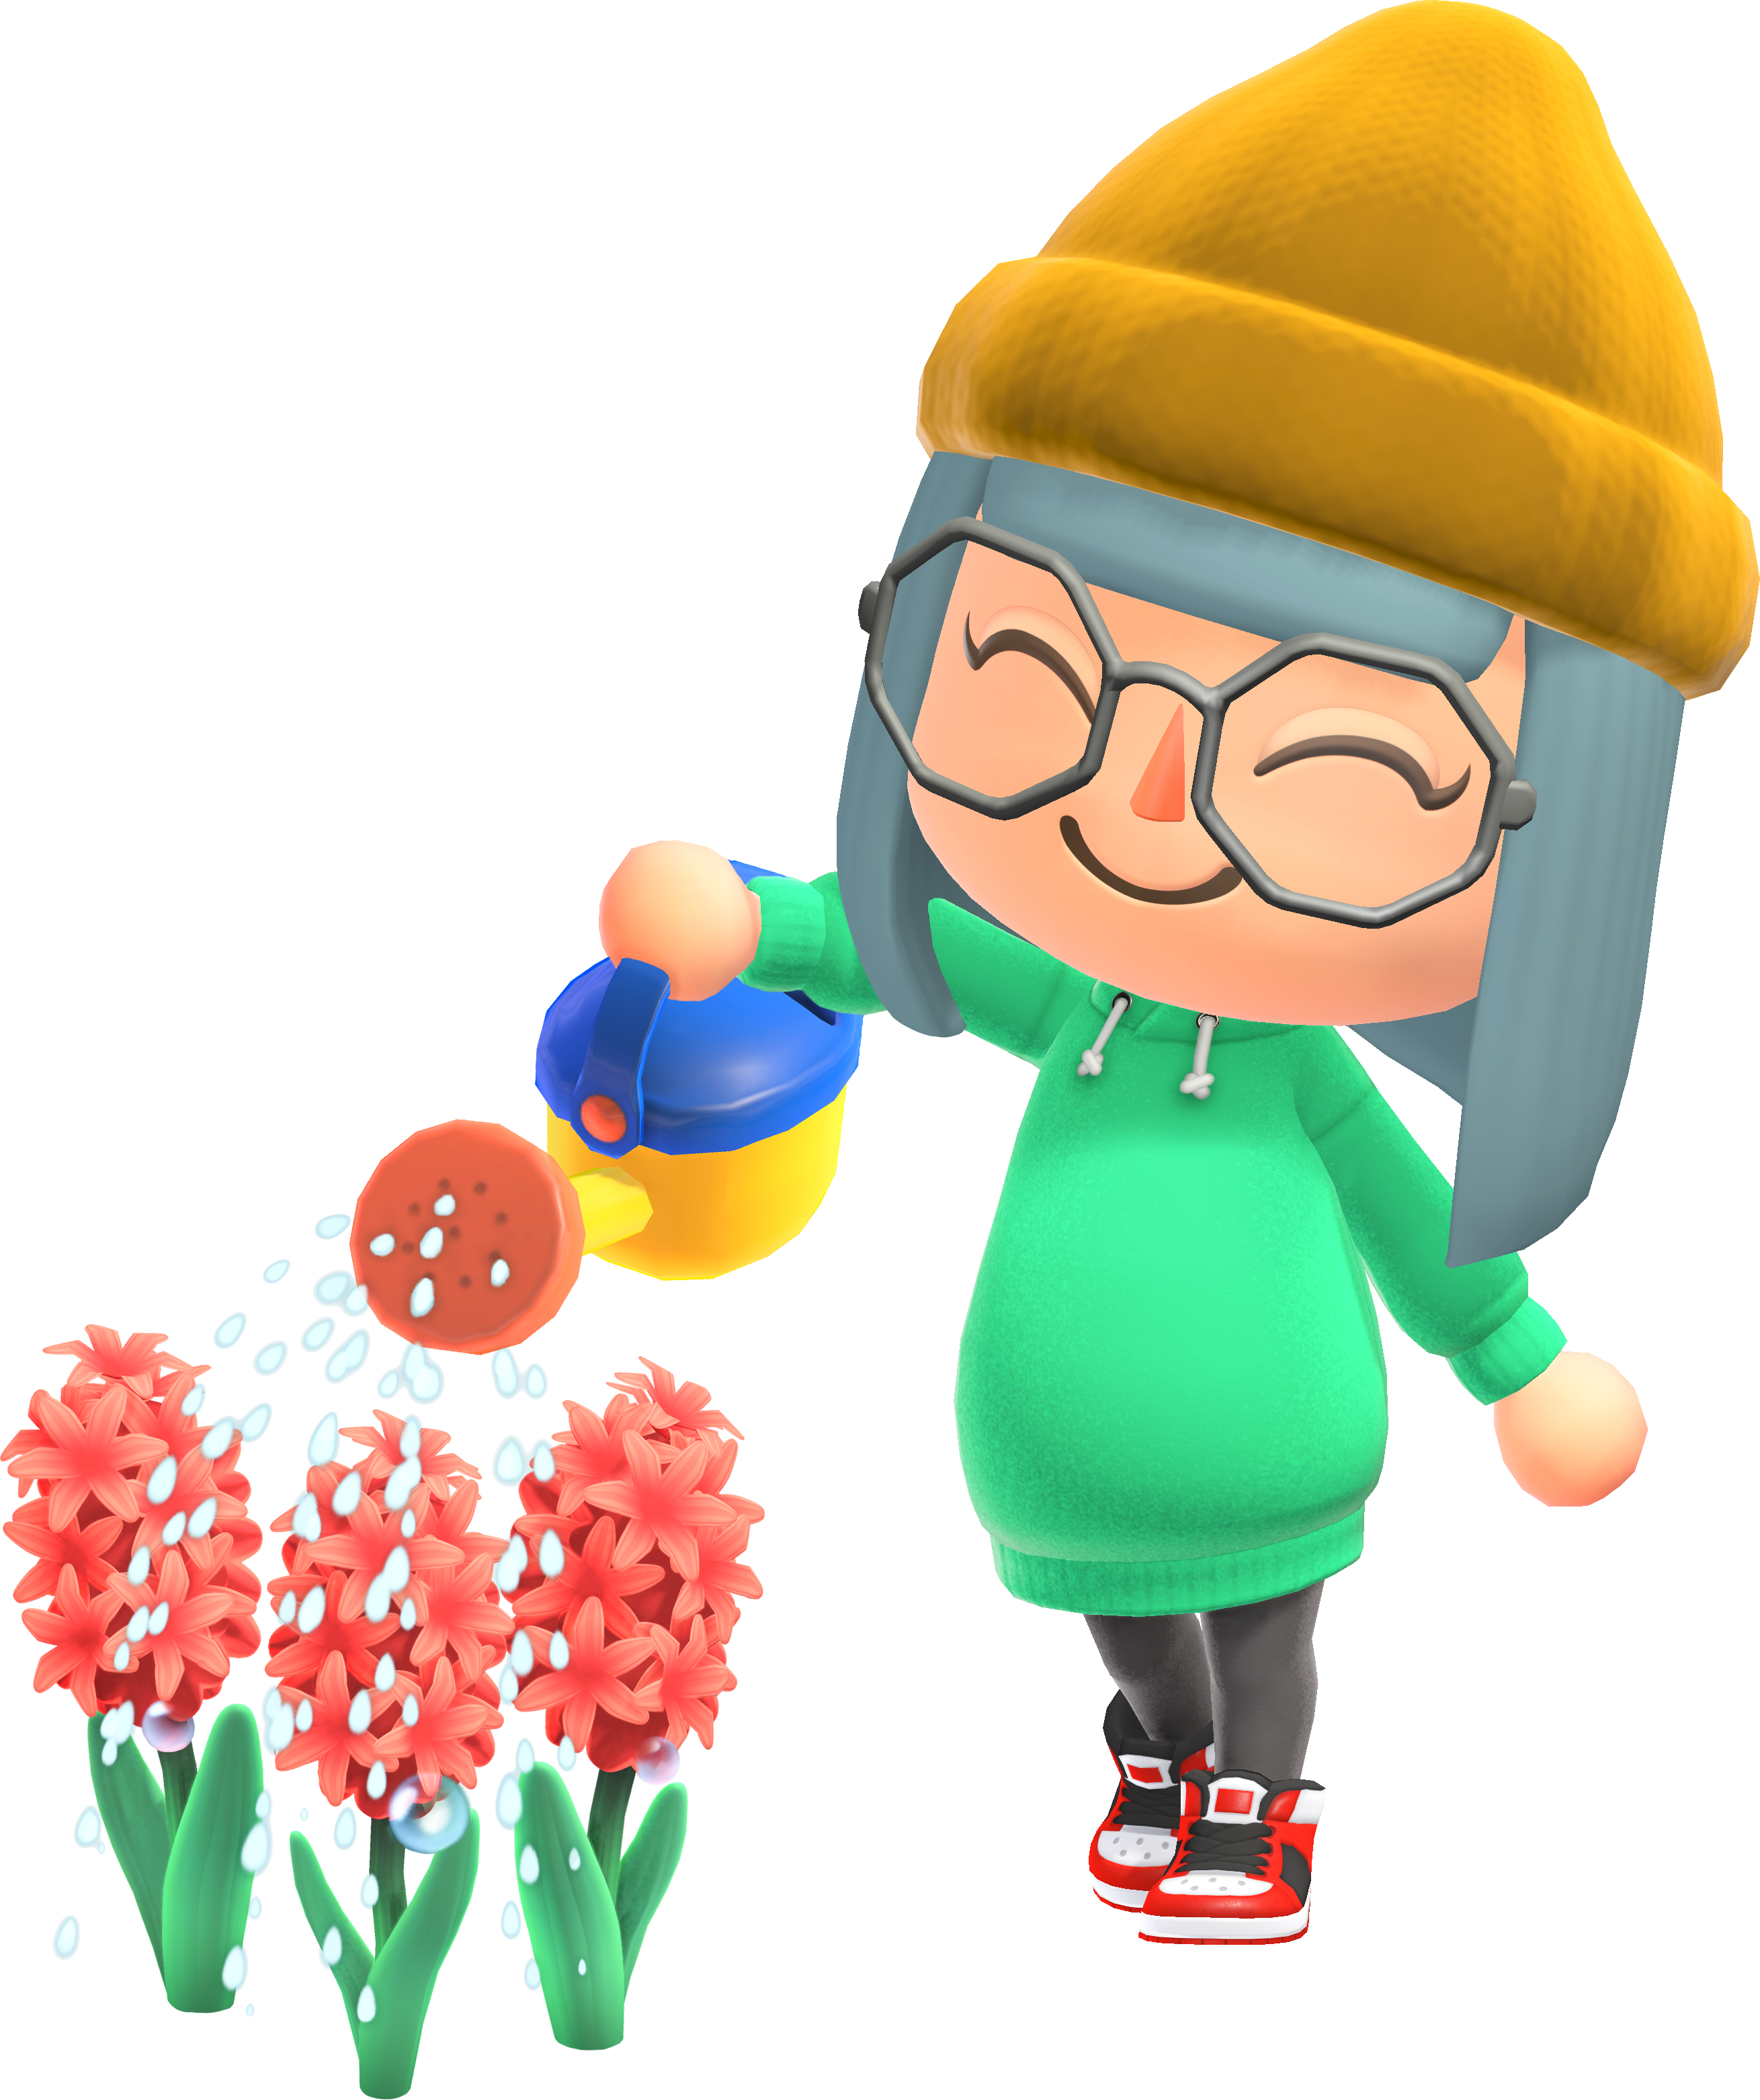 Watering Can Animal Crossing Wiki Fandom